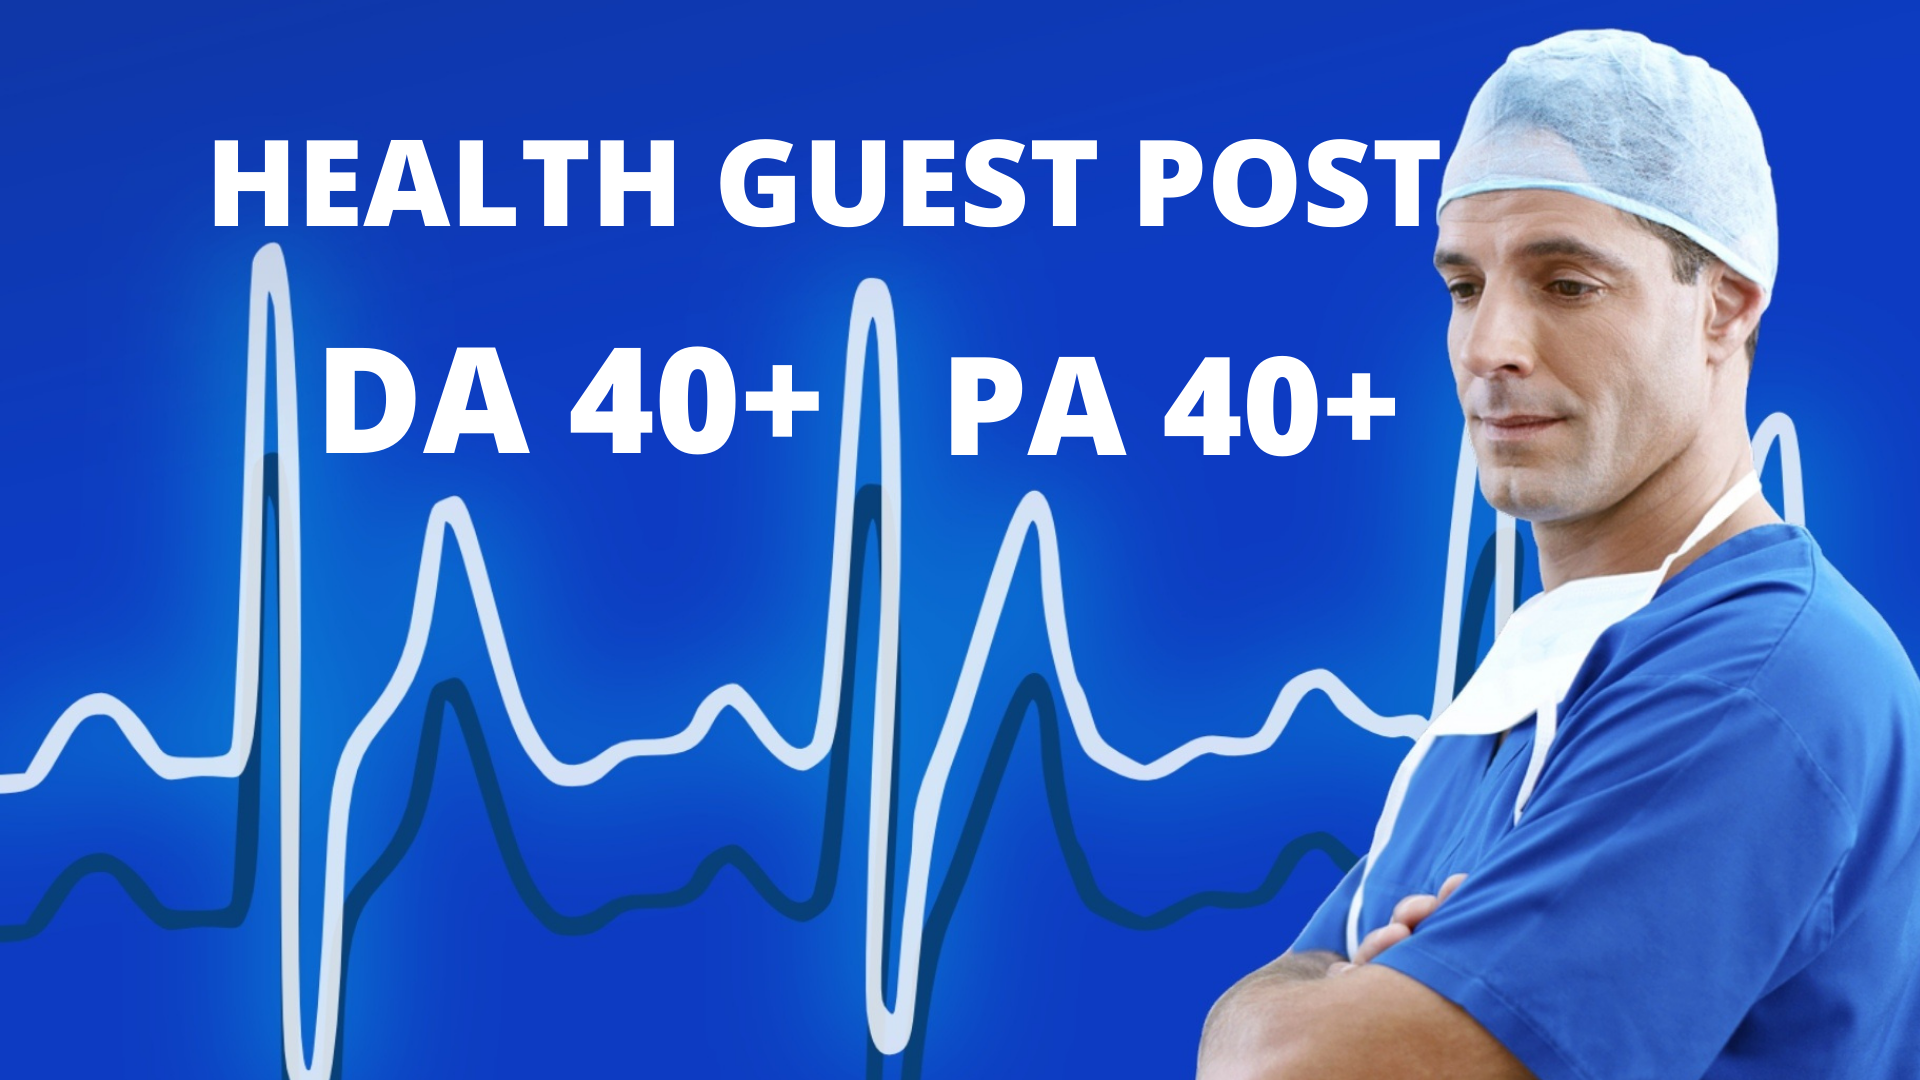 I will do guest post on health blog